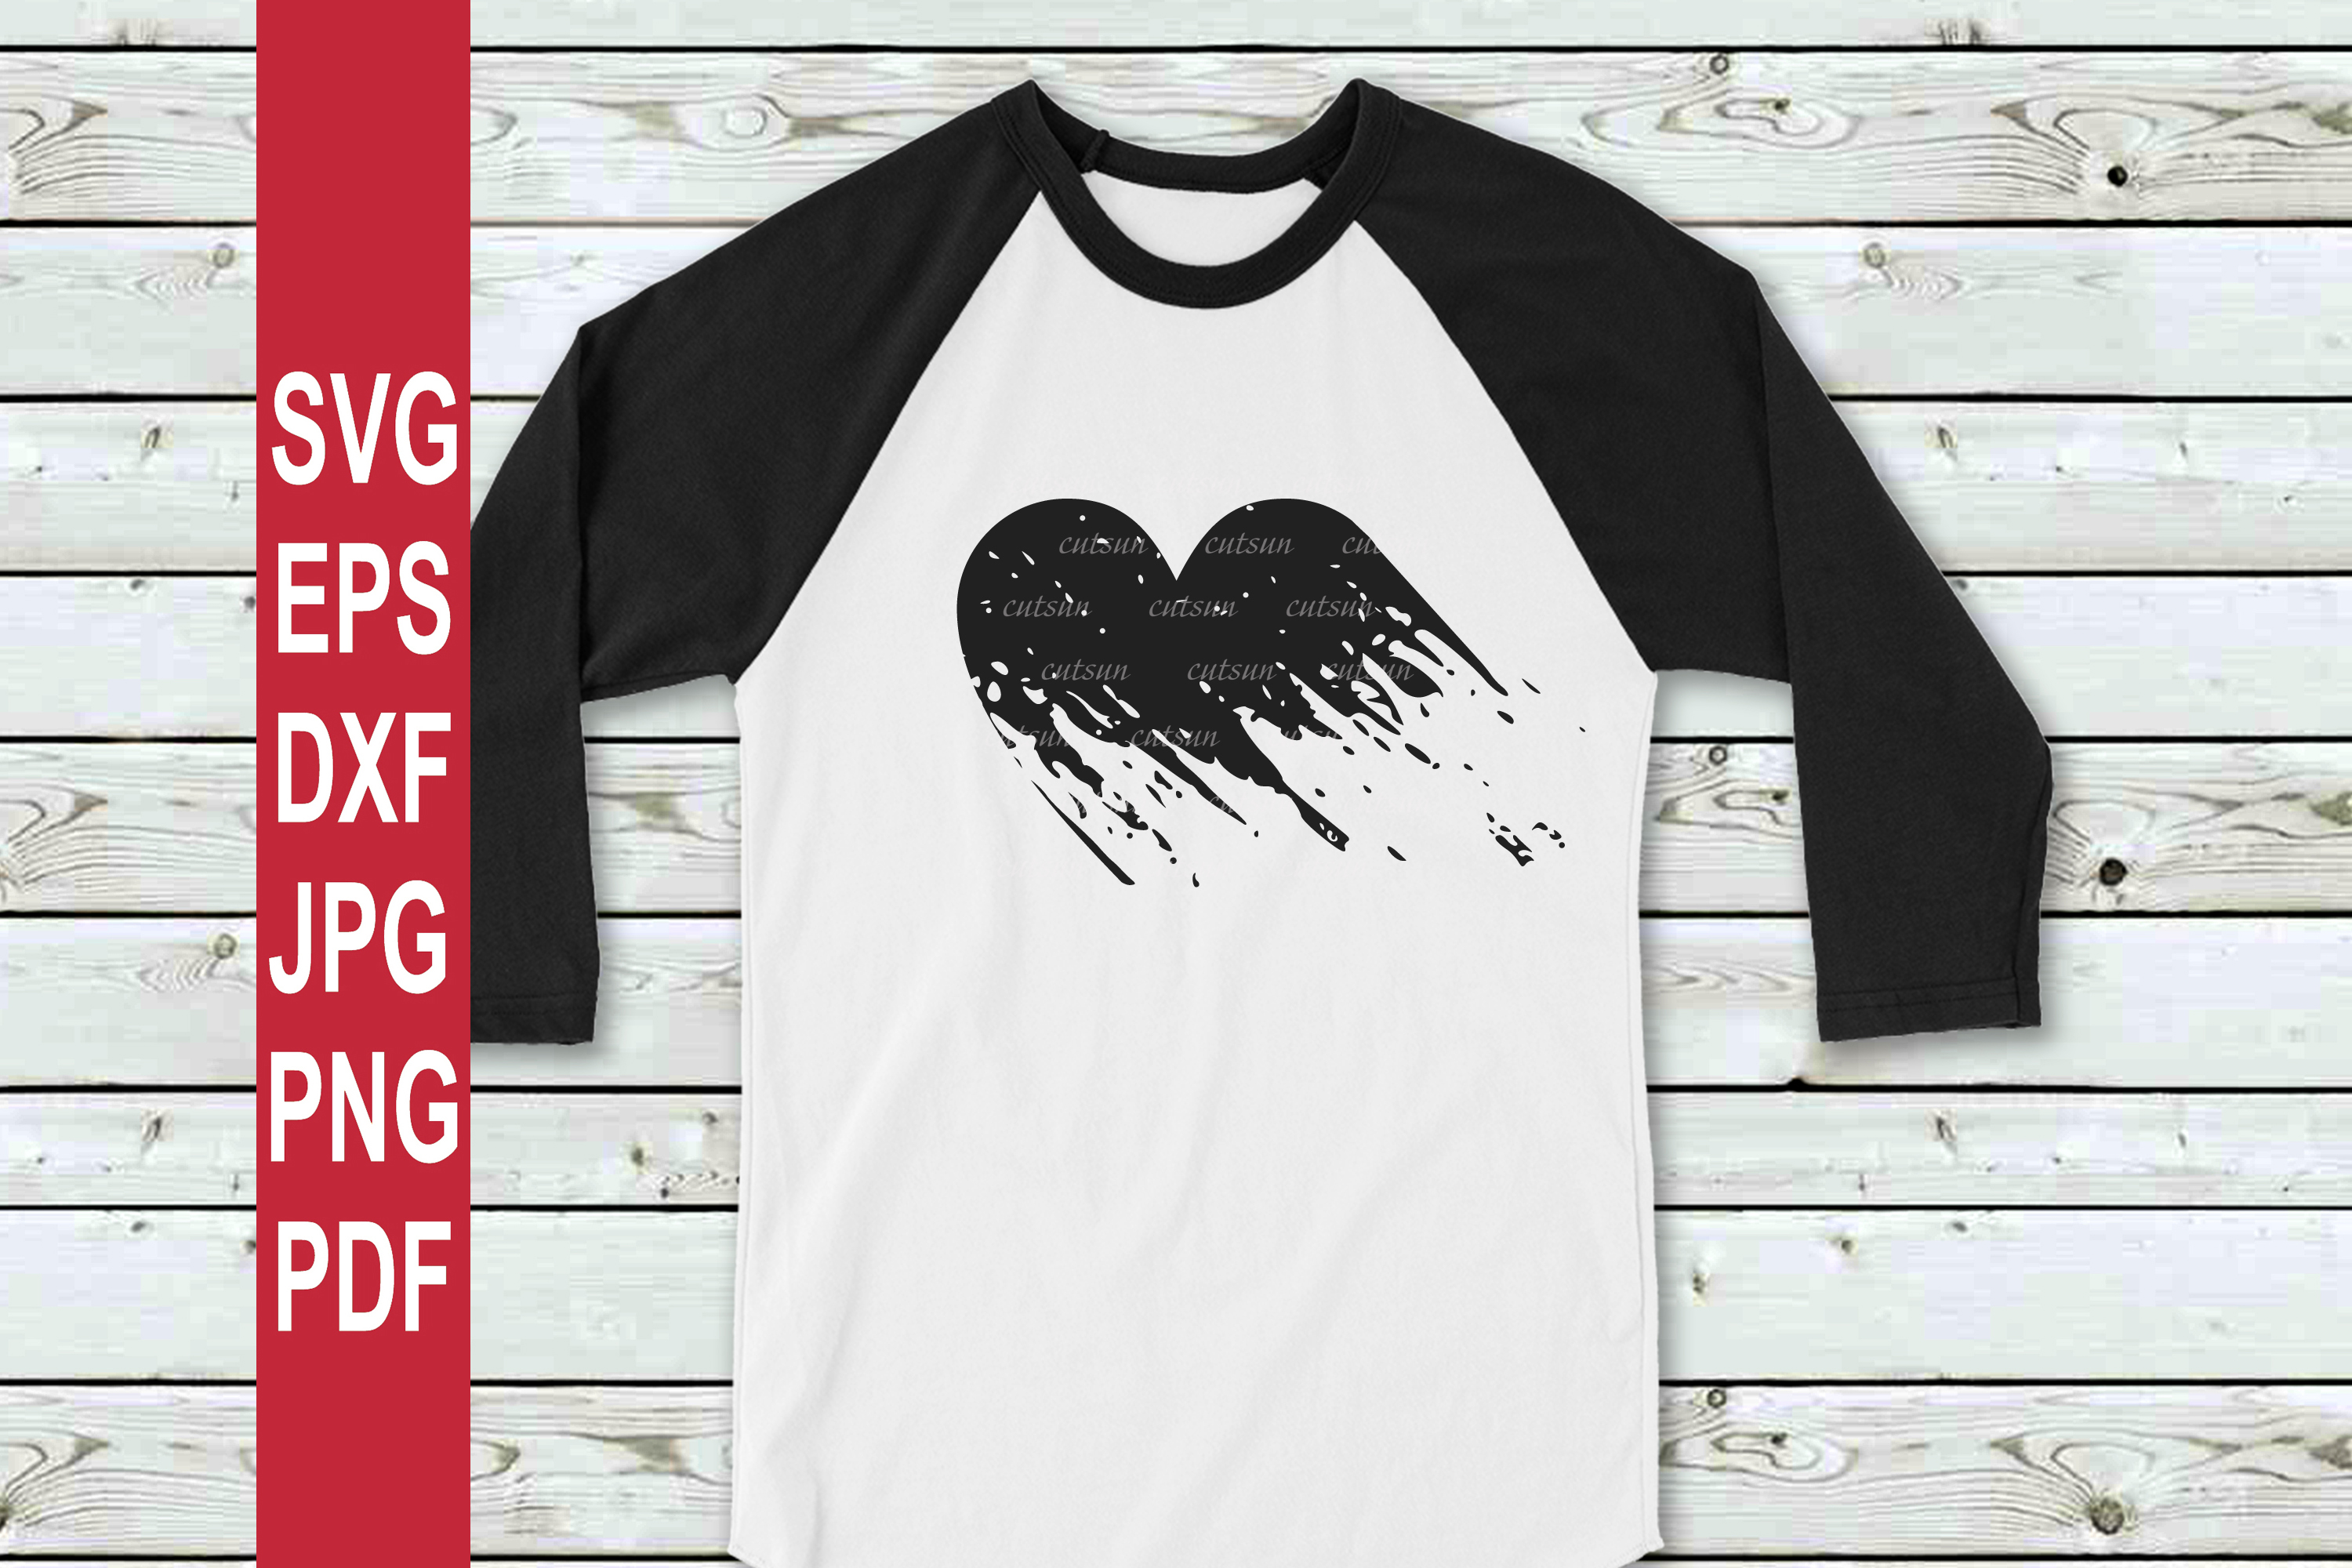 Valentine SVG | Grunge heart SVG | Distressed heart SVG example image 3